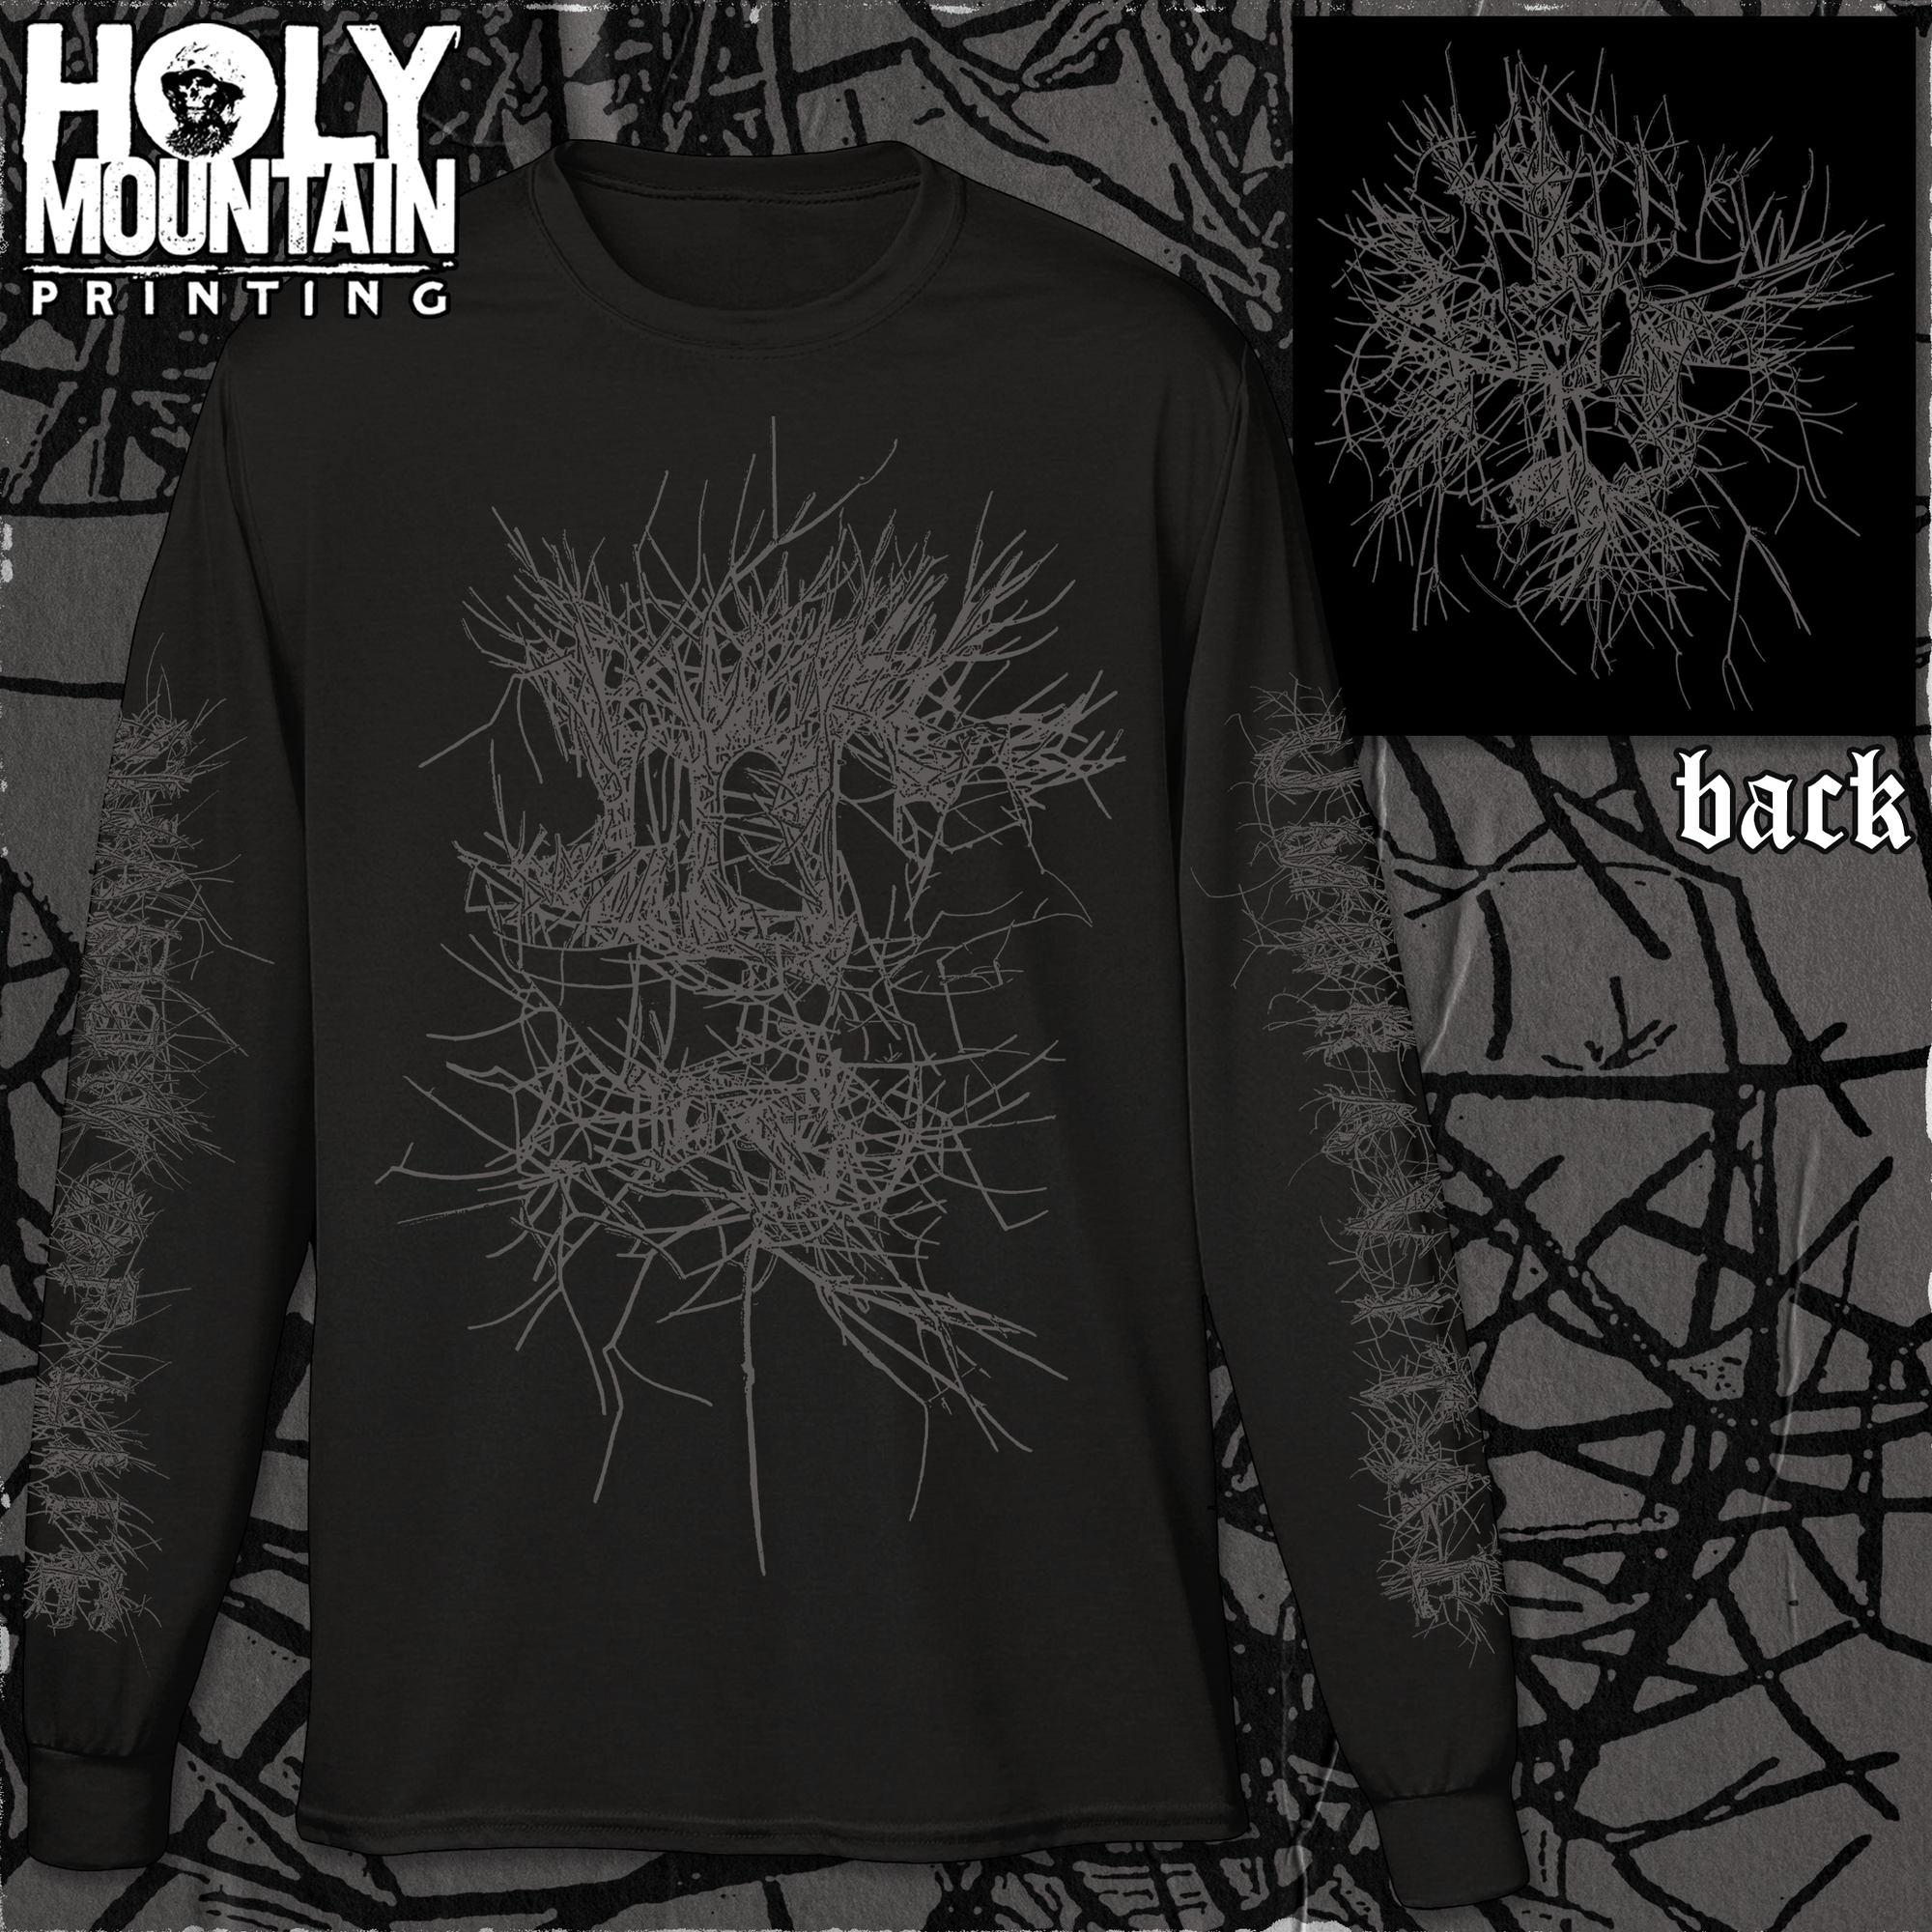 "UMBRA VITAE ""SHADOW OF LIFE"" LONG SLEEVE"